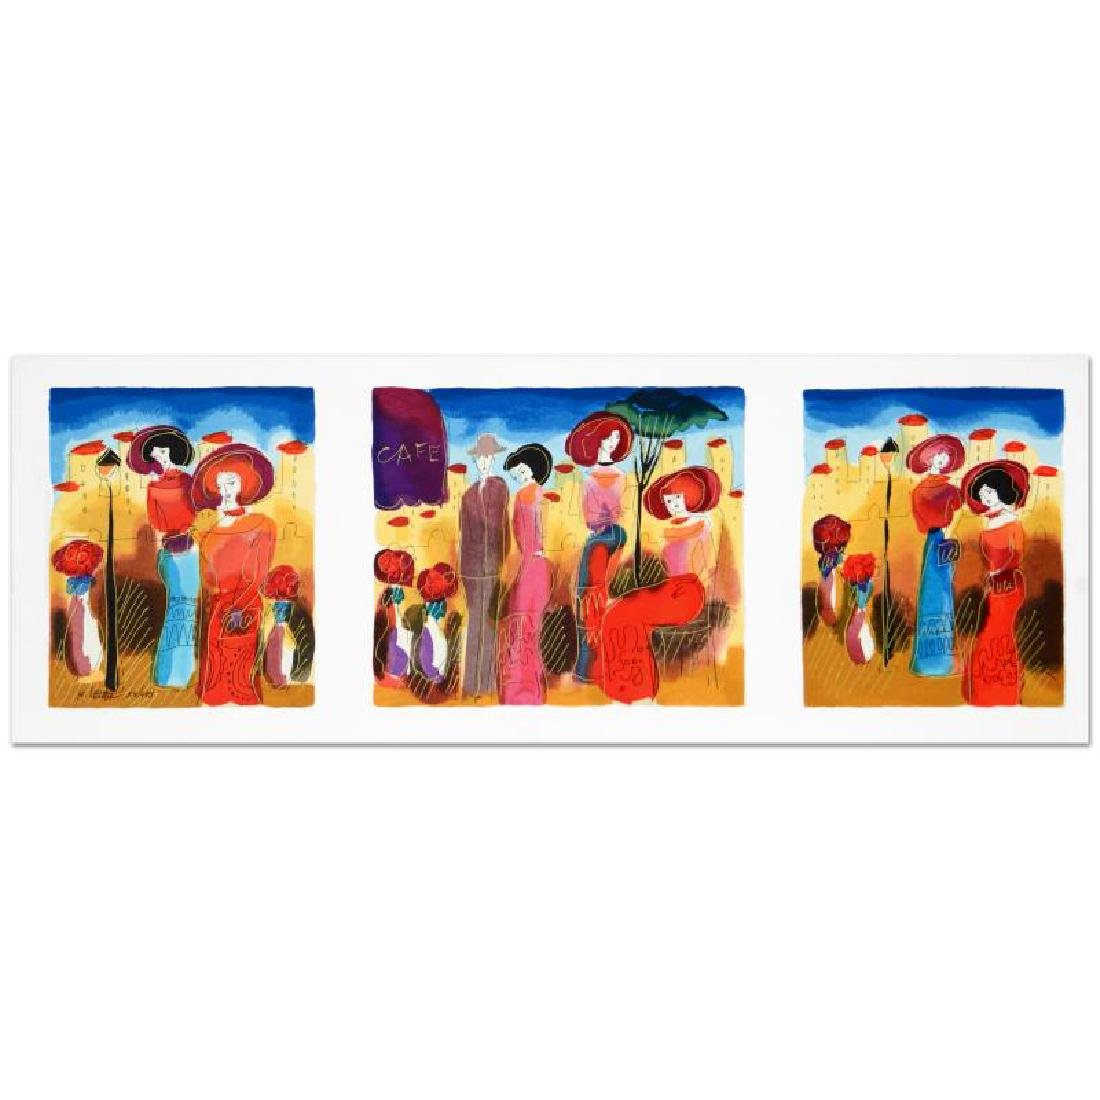 Sunny Afternoon Limited Edition Serigraph by Moshe